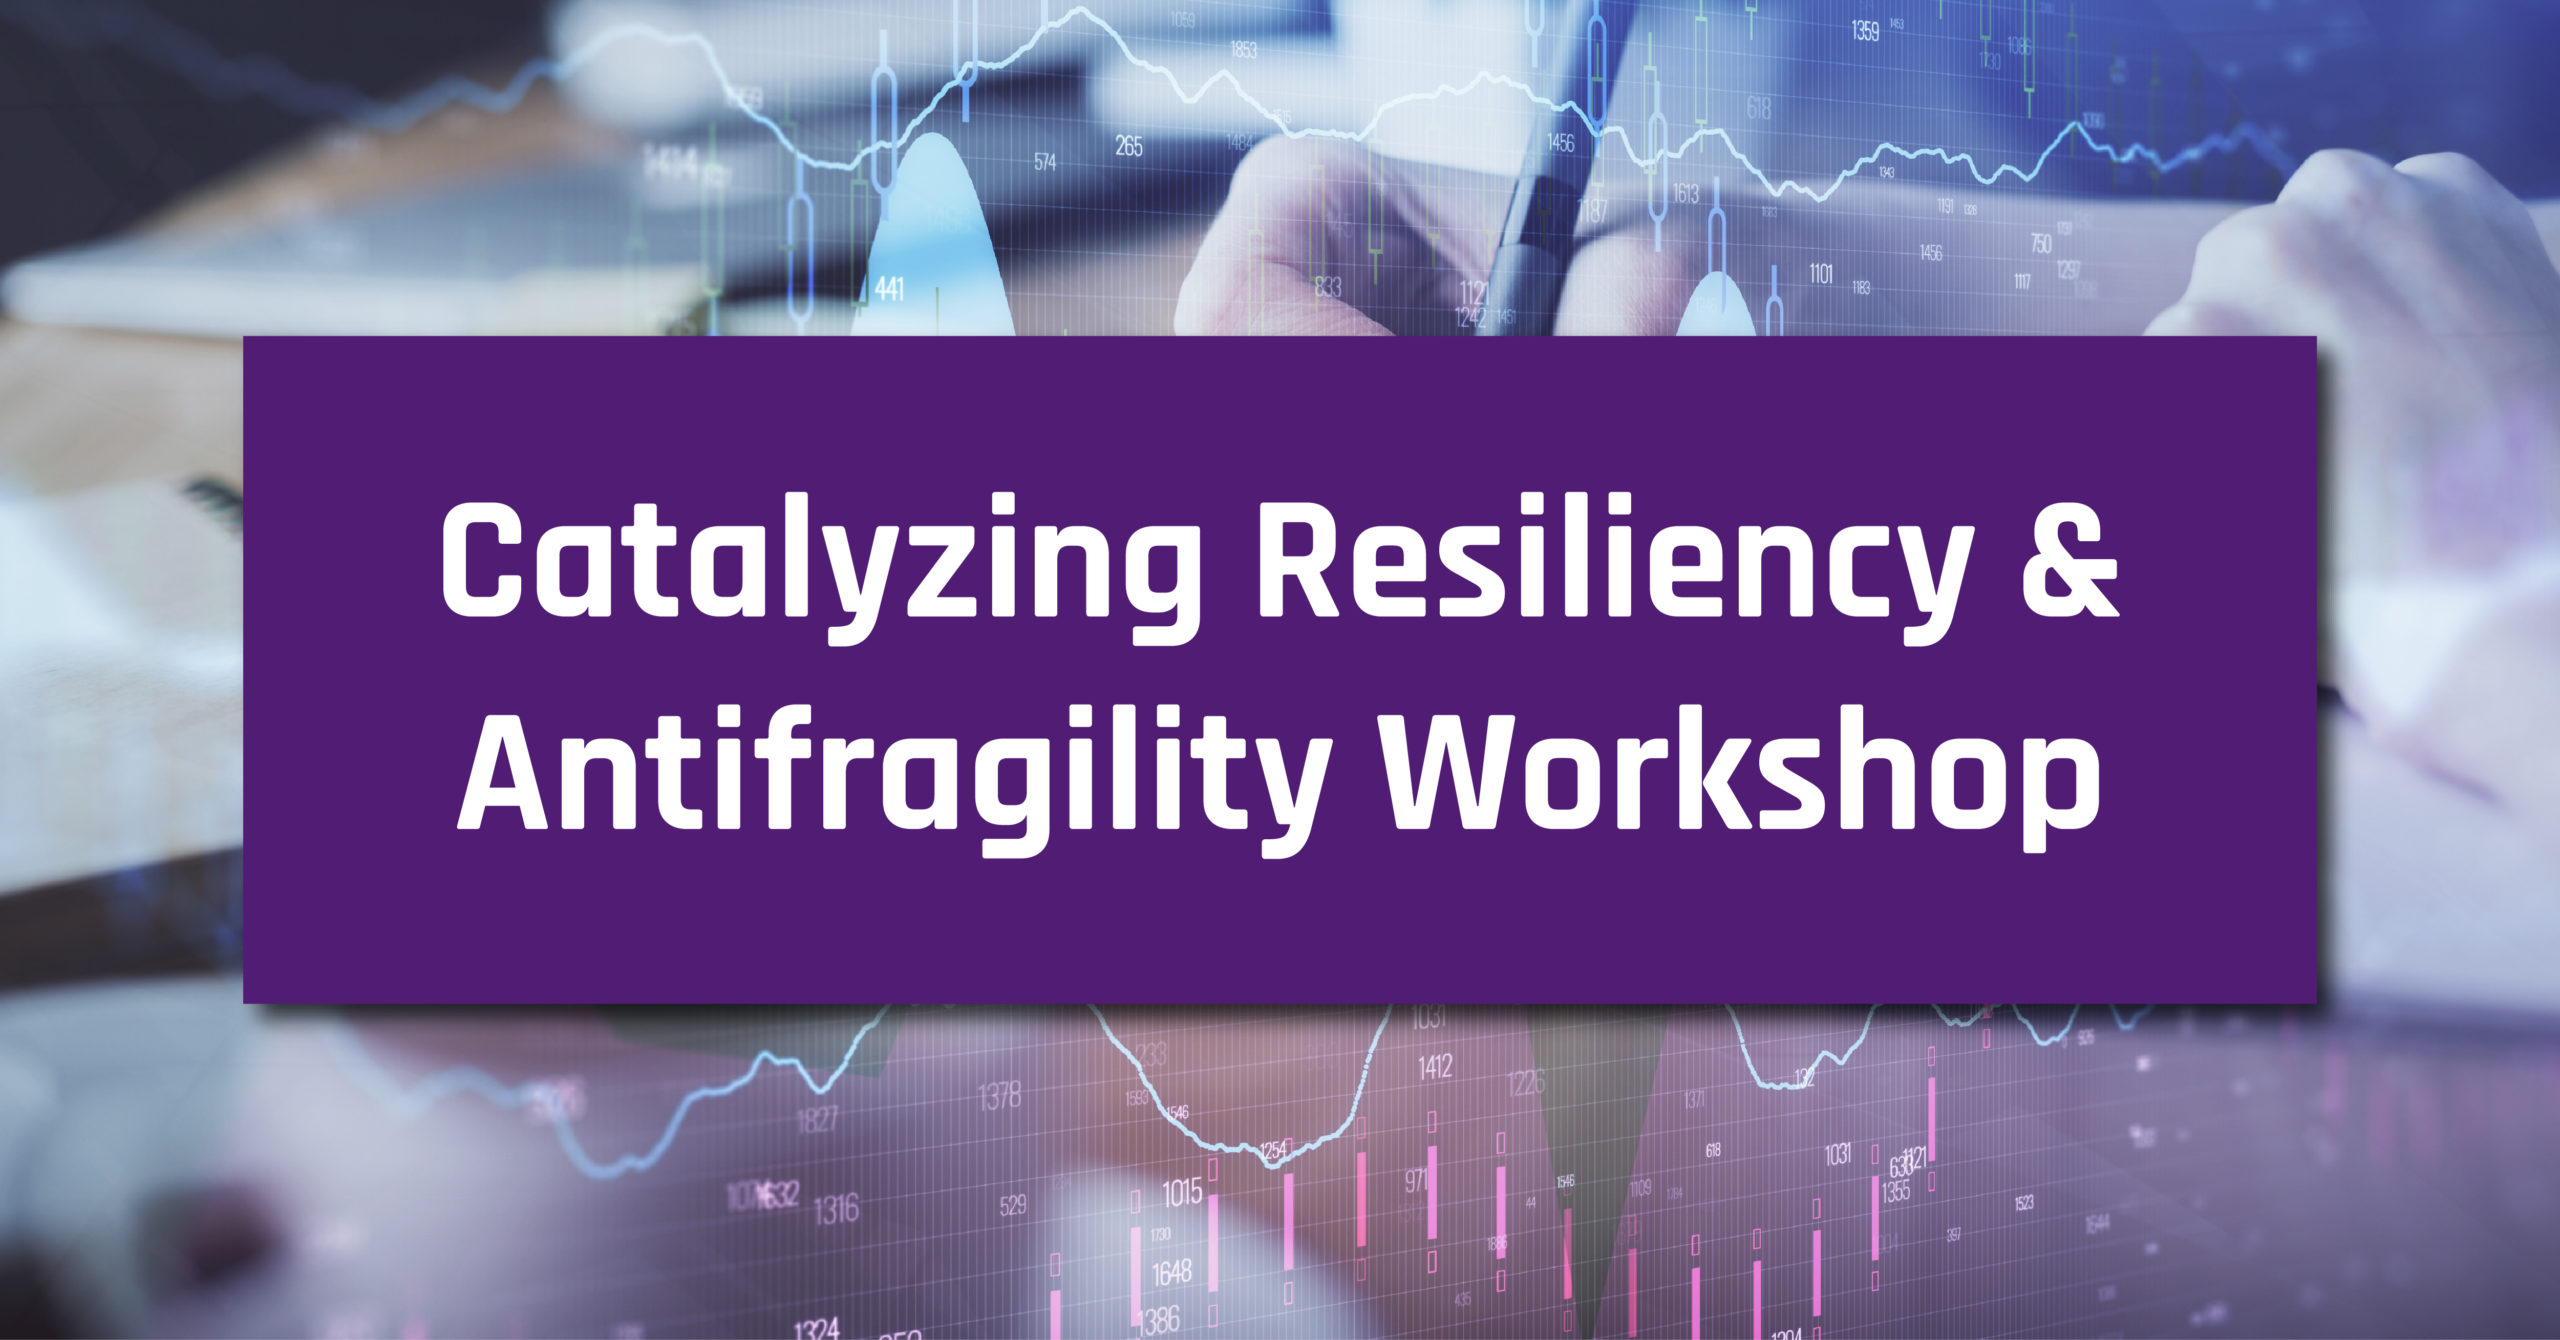 Catalyzing Resiliency and Antifragility 2-Day Workshop